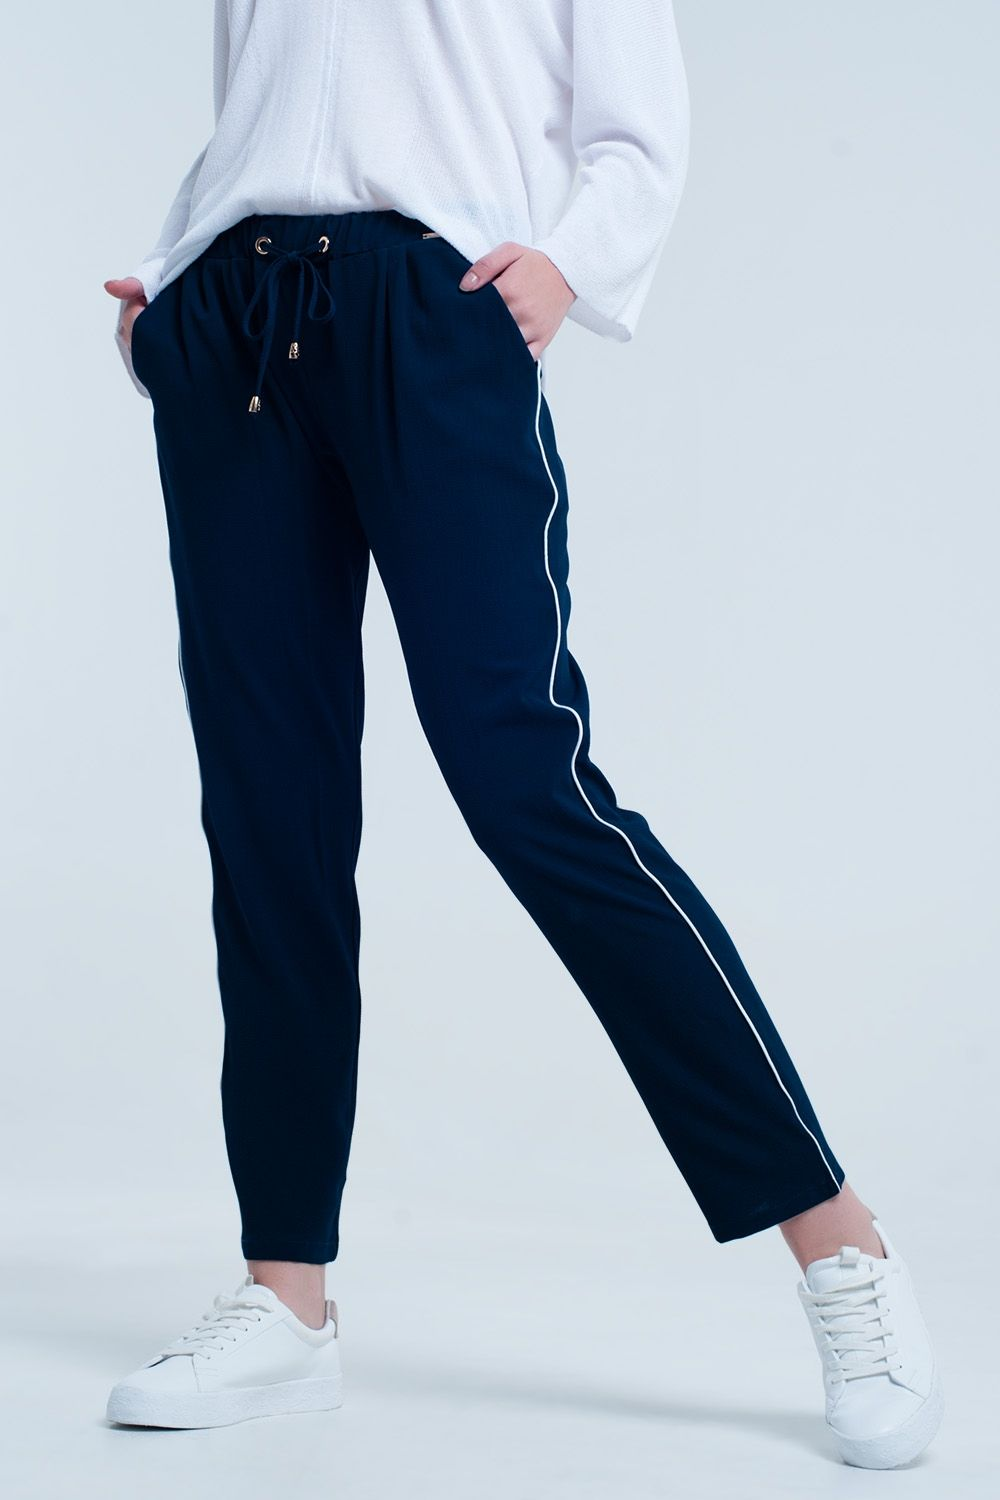 6c9aeb6ff25ef Navy blue pants with lateral white lines on each side. Comfortable  material. Perfect for formal wear during any season.